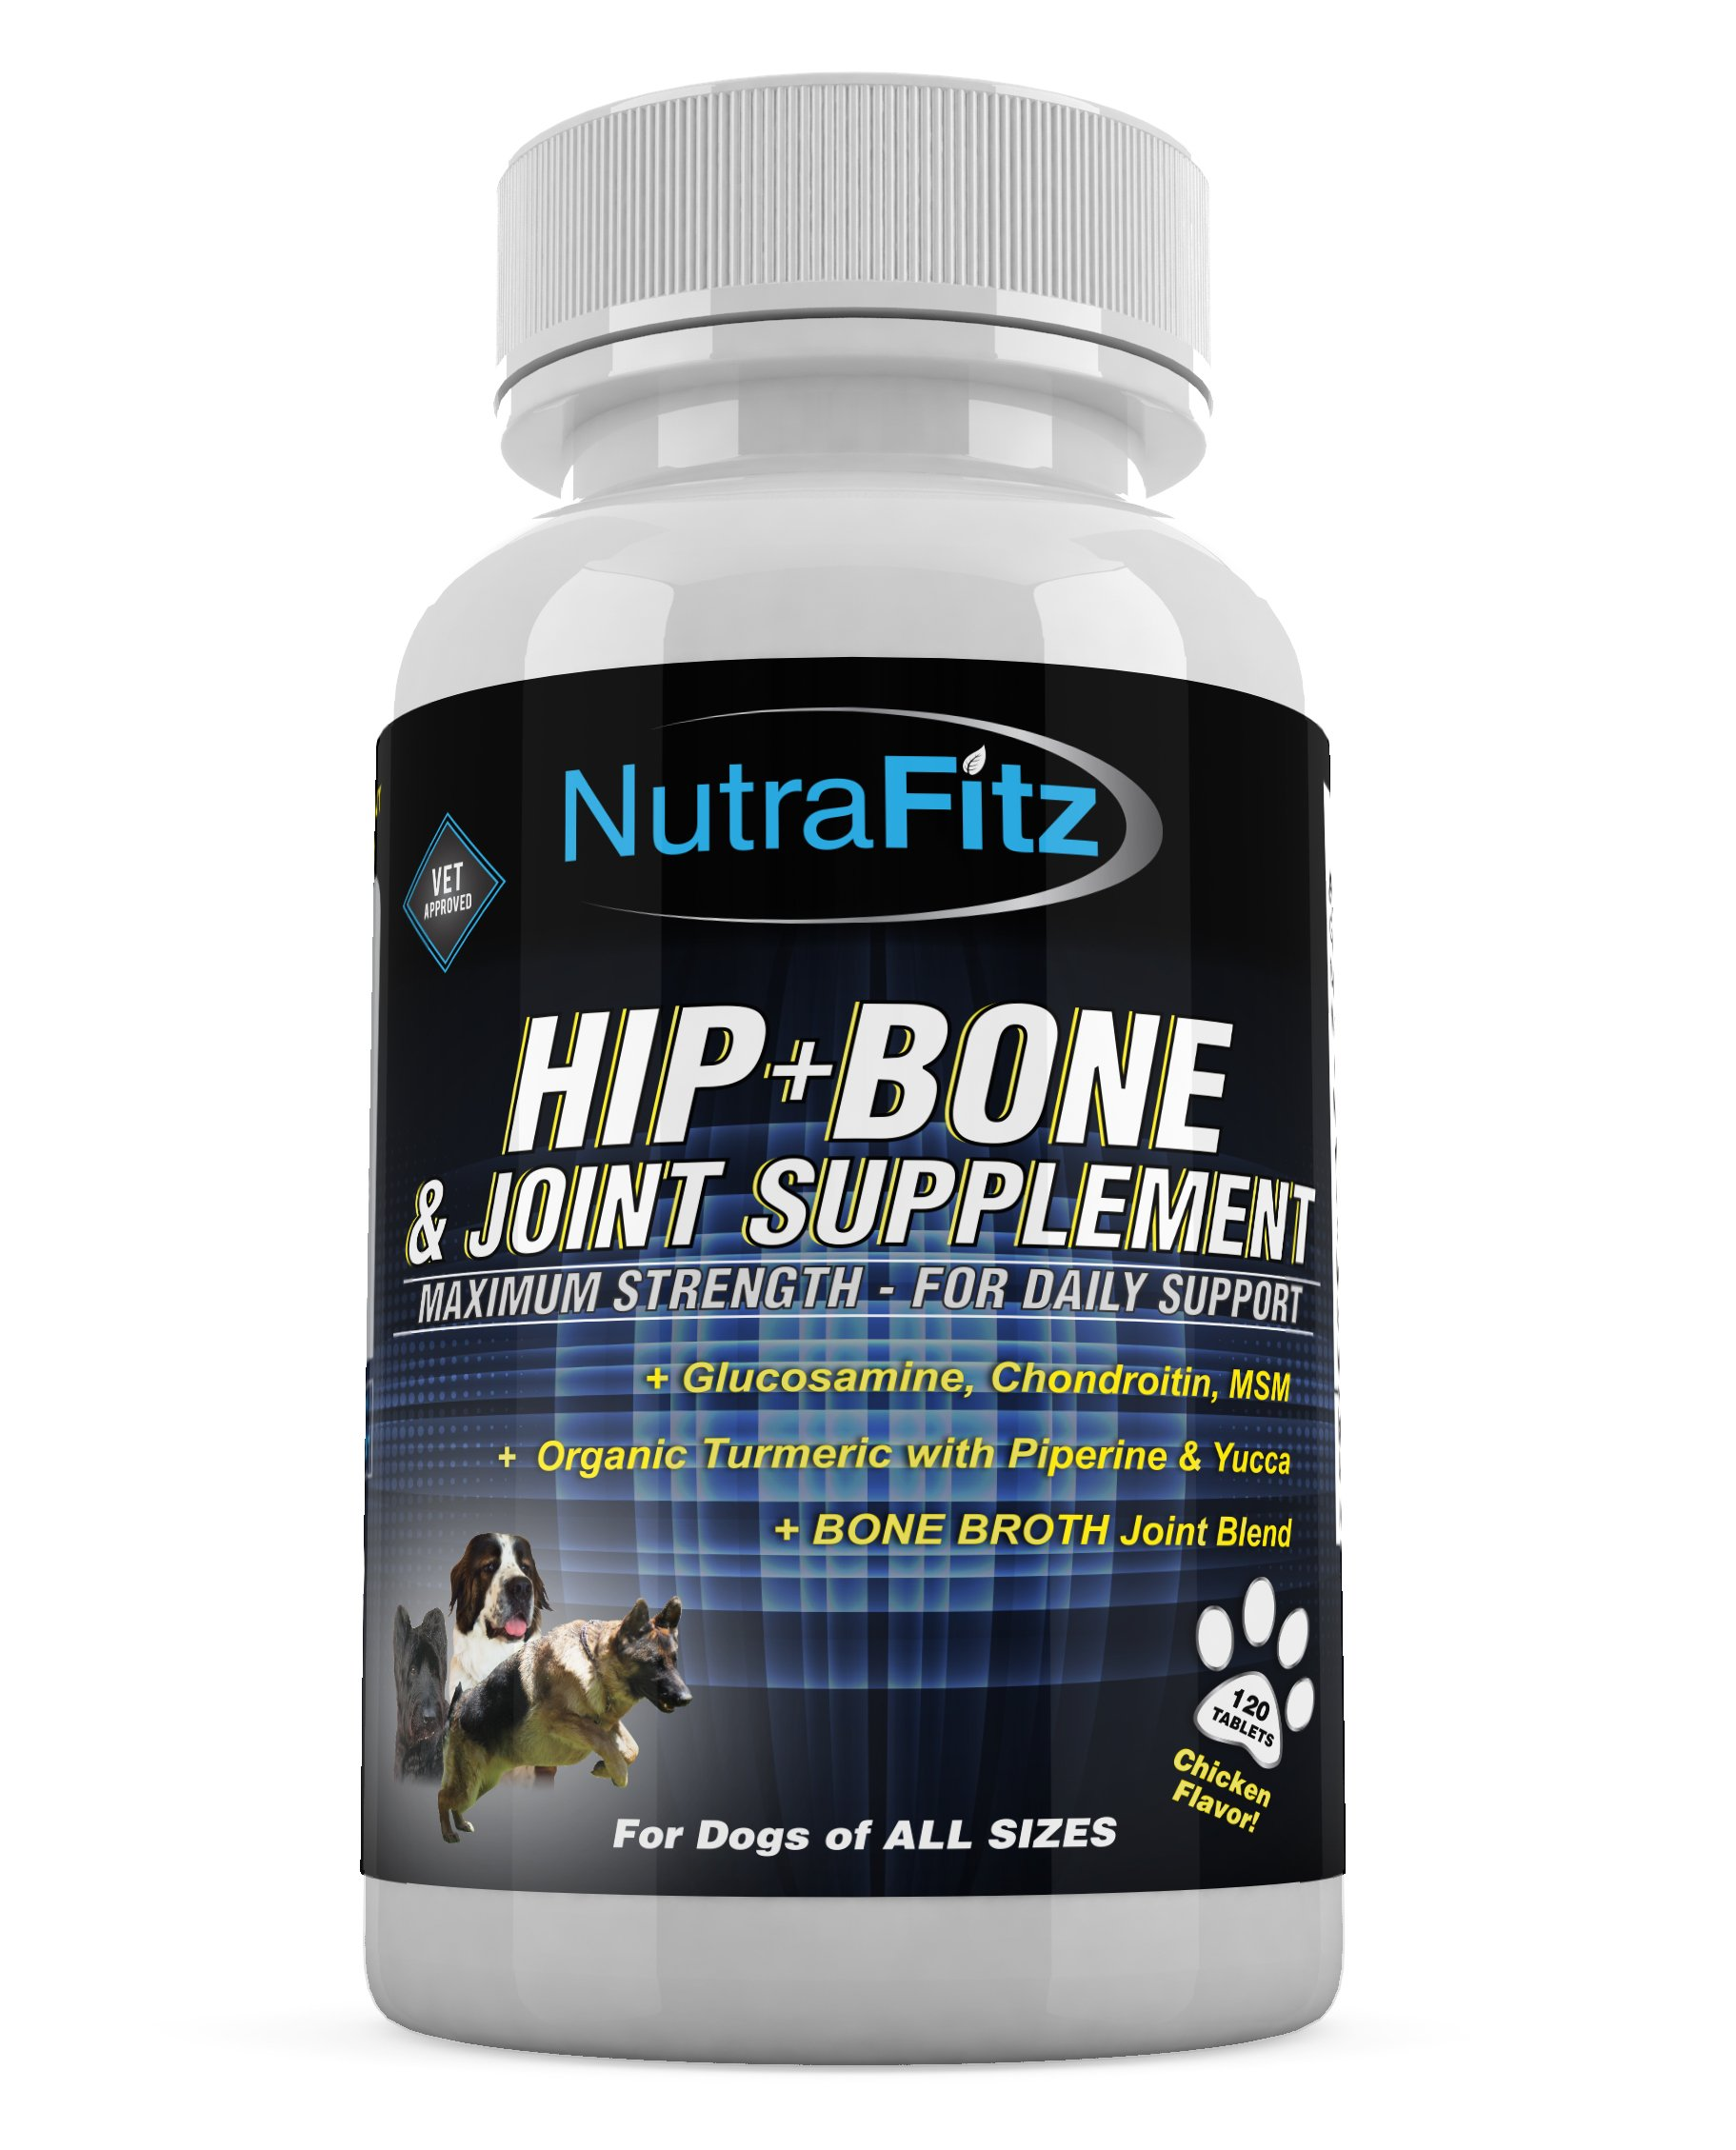 NutraFitz Glucosamine for Dogs Bone Hip and Joint Supplements with Chondroiti